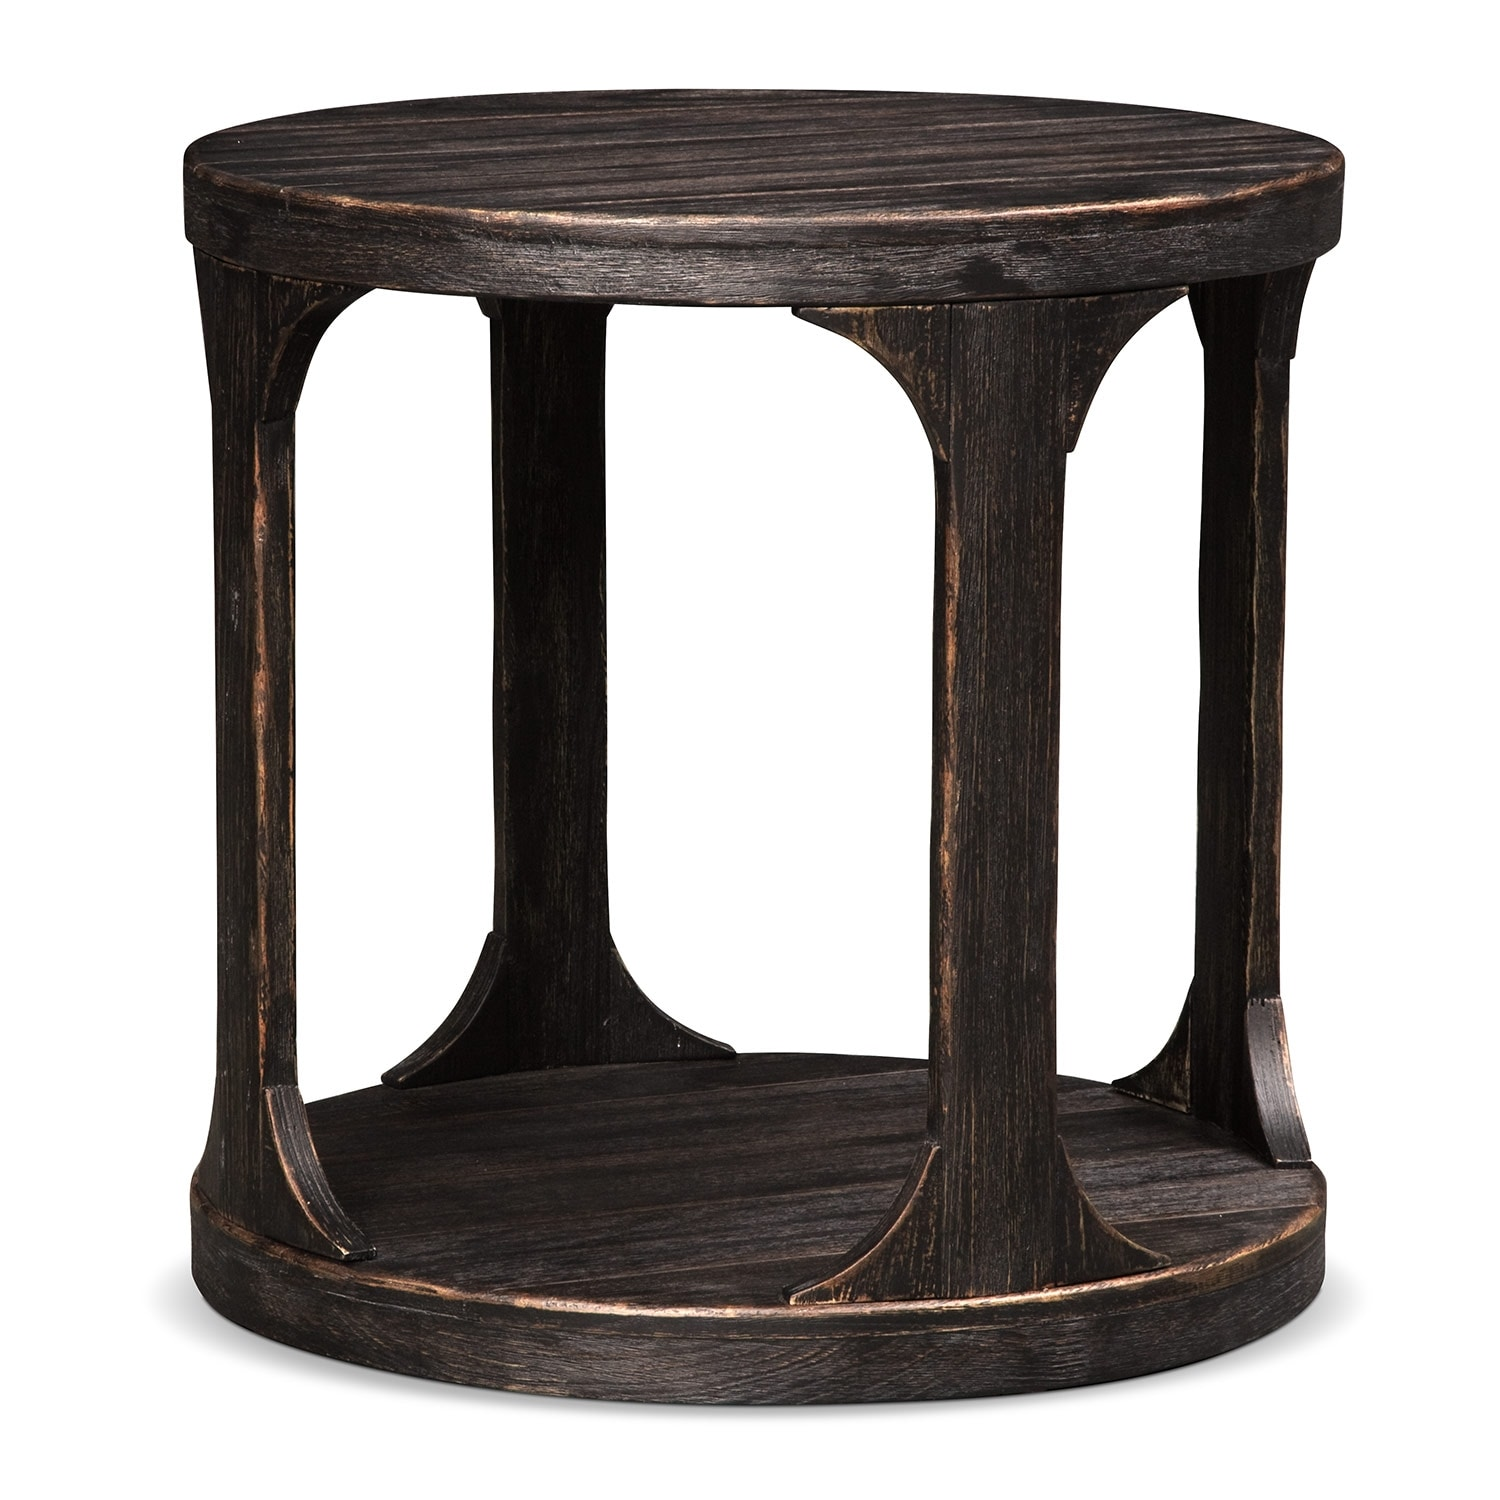 Accent and Occasional Furniture - Prentice Round End Table - Weathered Black